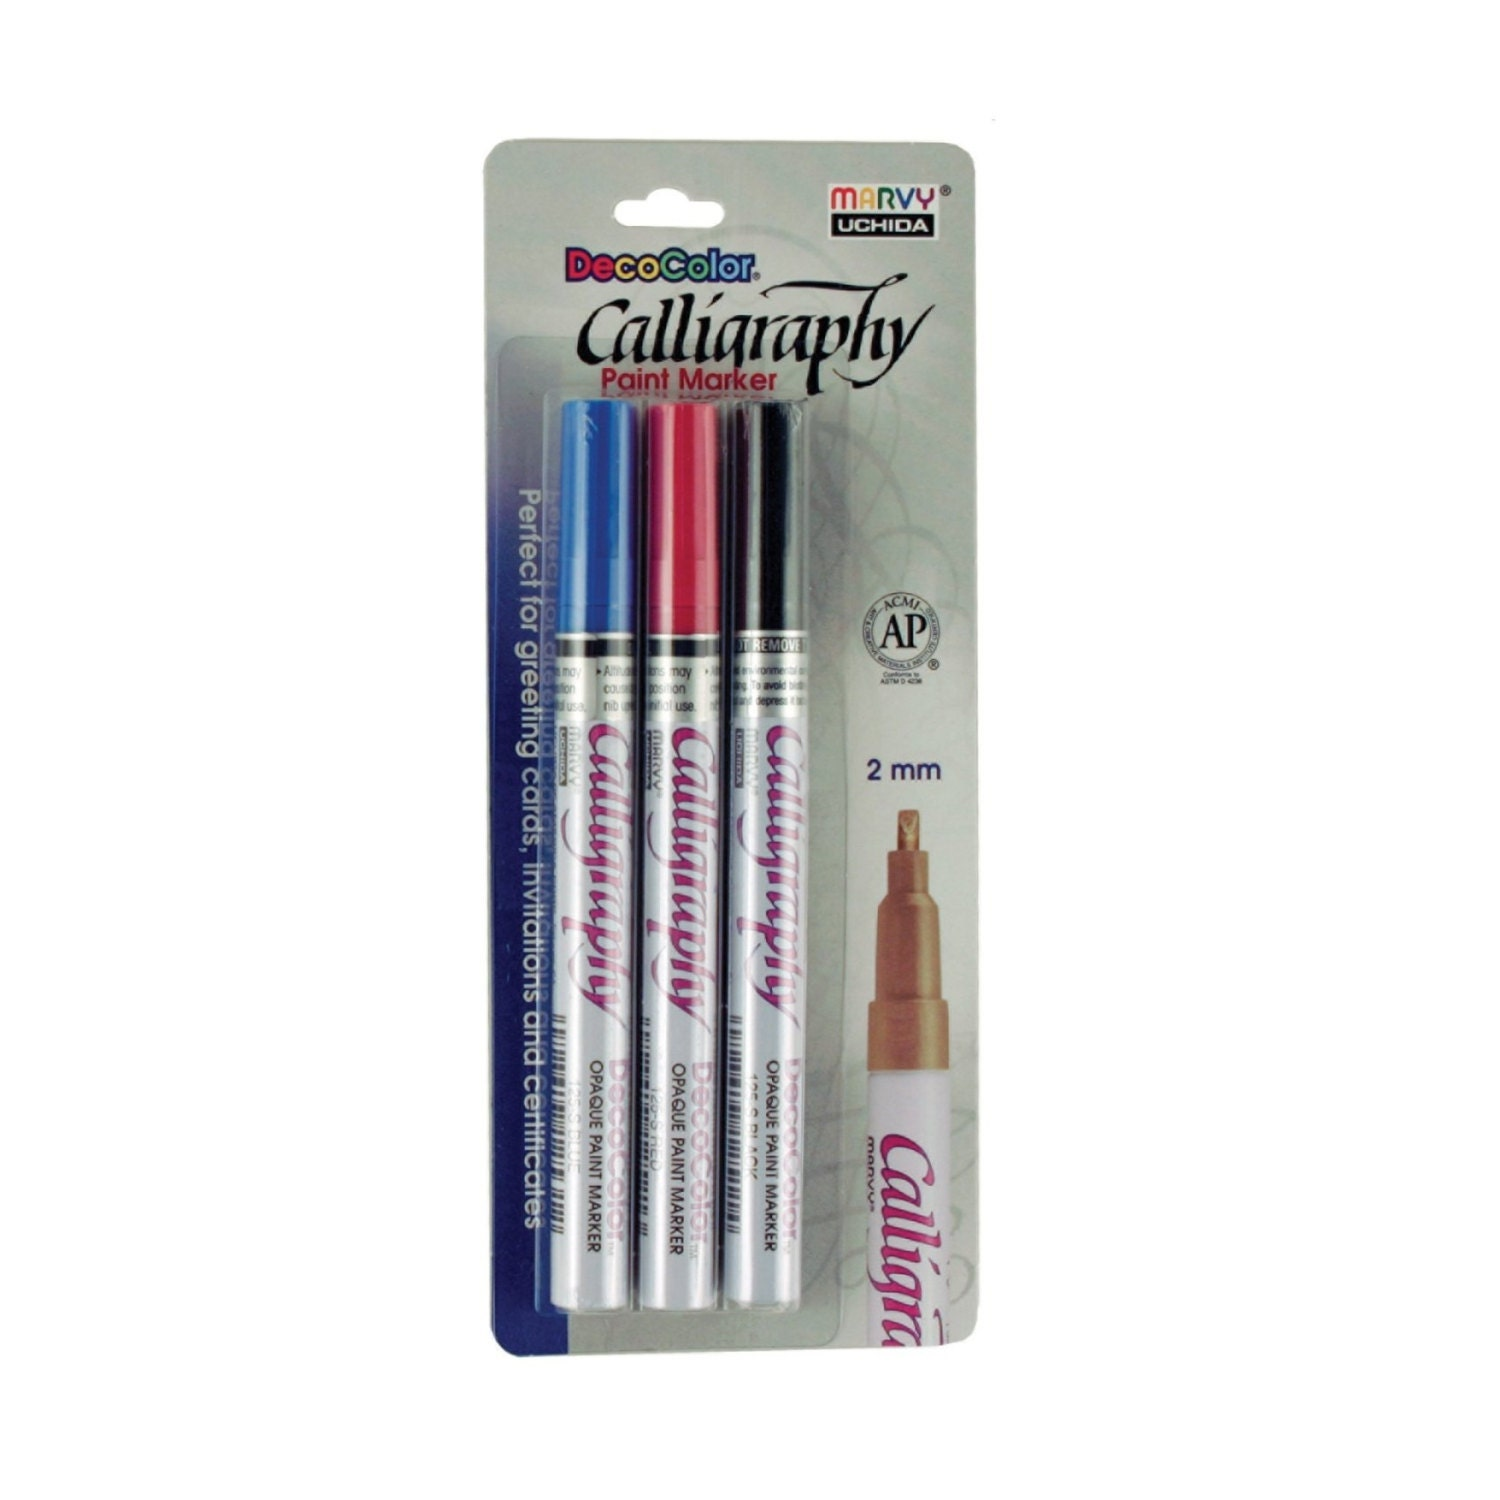 Uchida Marvy 3 Piece Calligraphy Paint Marker Set 2mm Nib